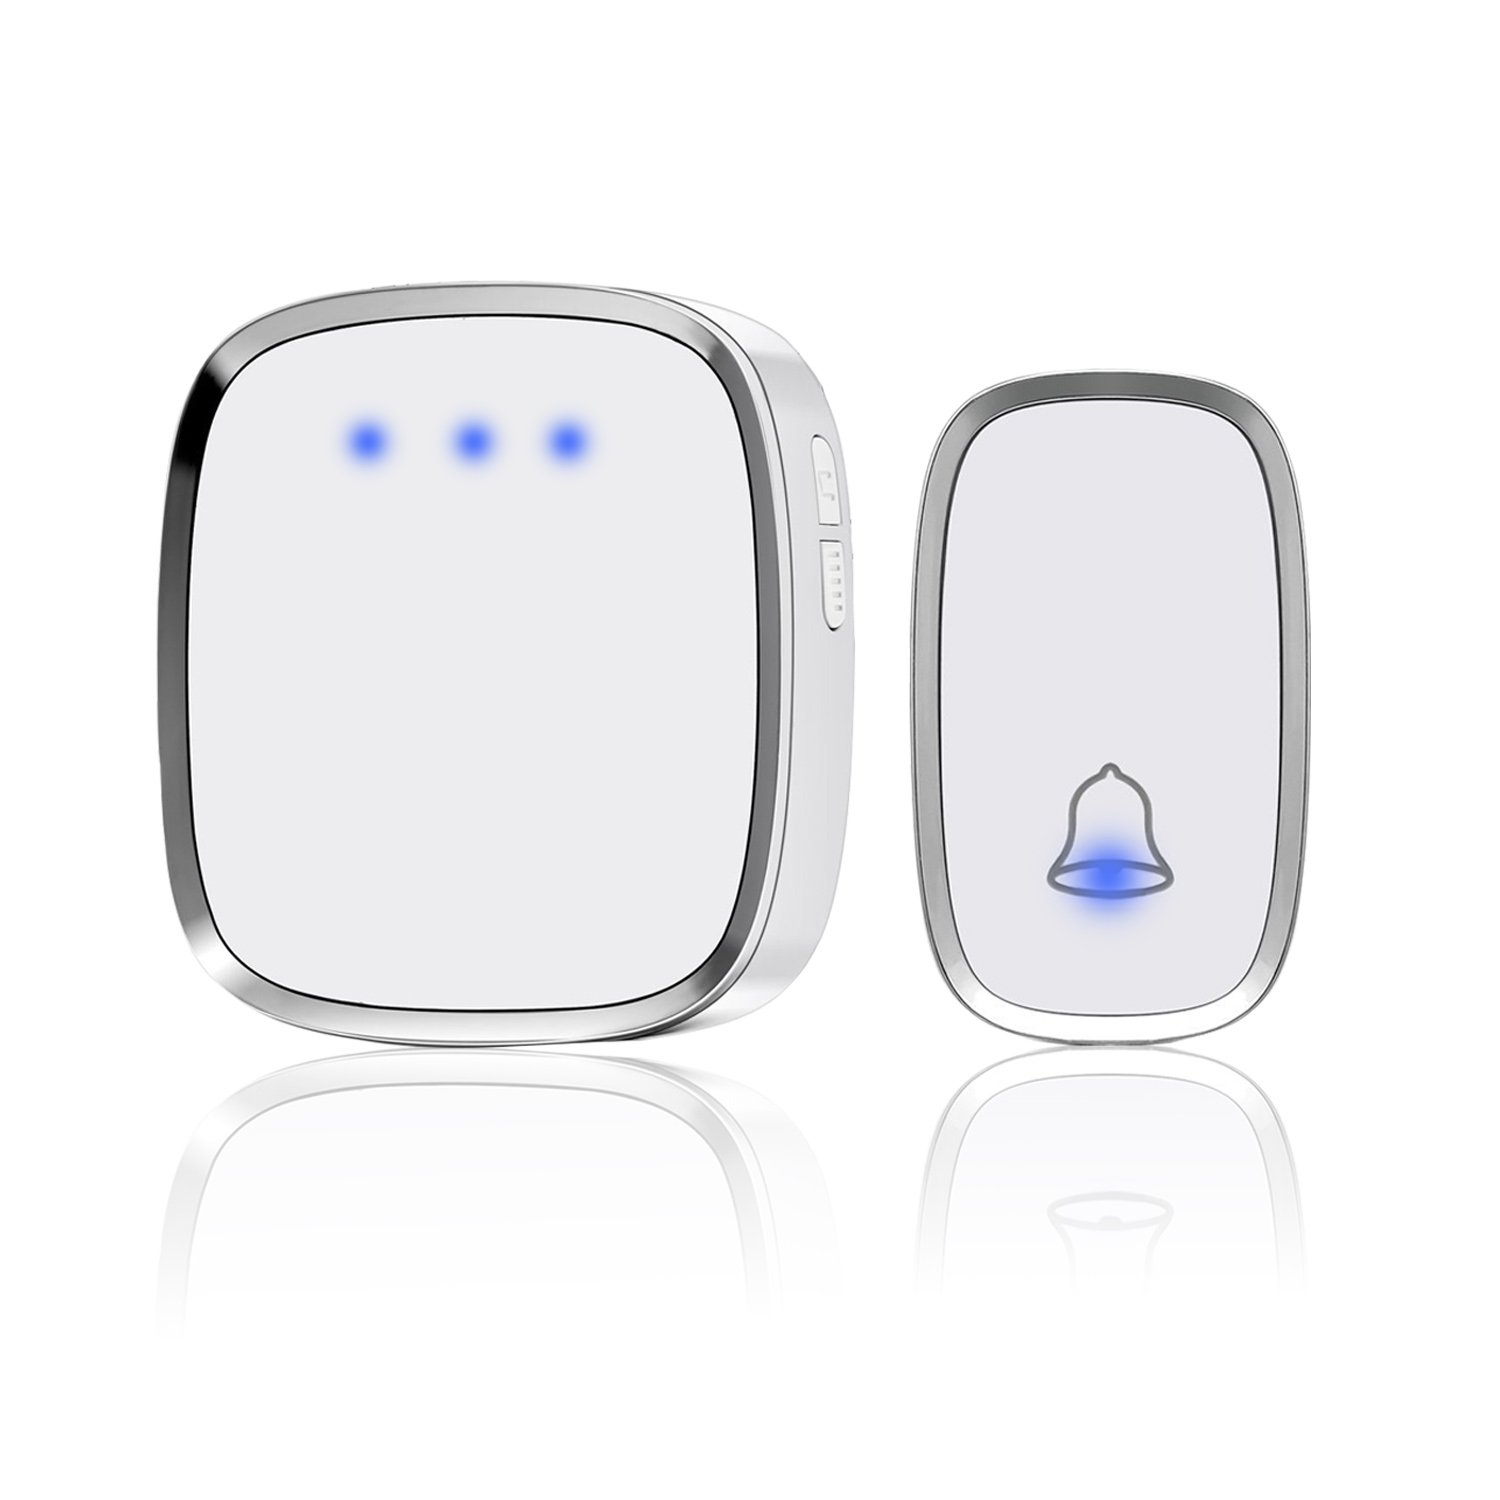 Waterproof Wireless Doorbell Alert System Expandable Multi-Unit Basal Getting Started Kit,1 Push Button Transmitter (included 1 battery) and 1 Plug-in Receiver Distance Over 1000ft 36 Melodies